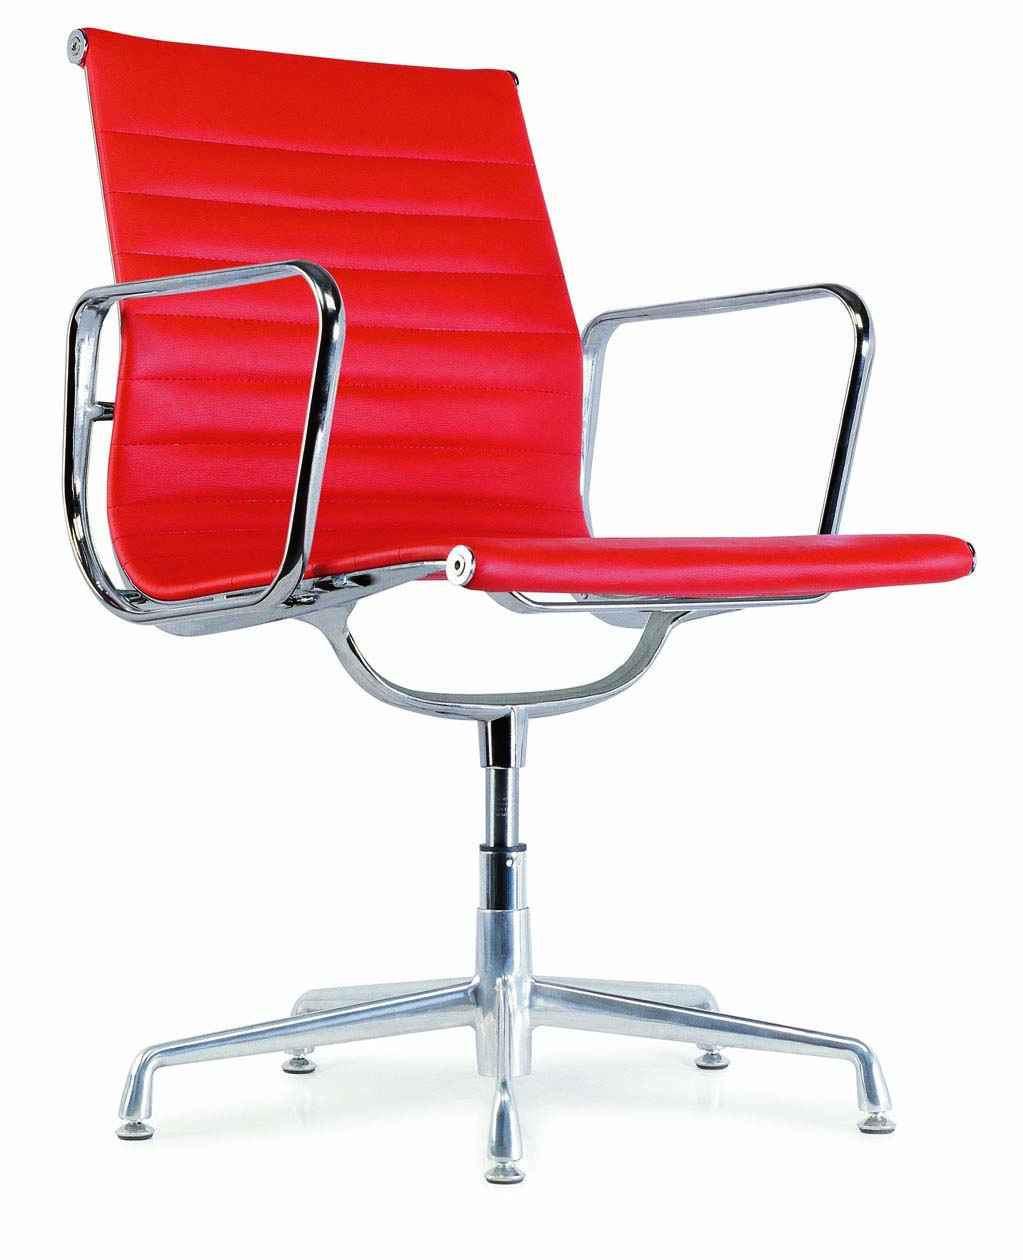 Office Chair Supplier with High Quality Products | Office Furniture